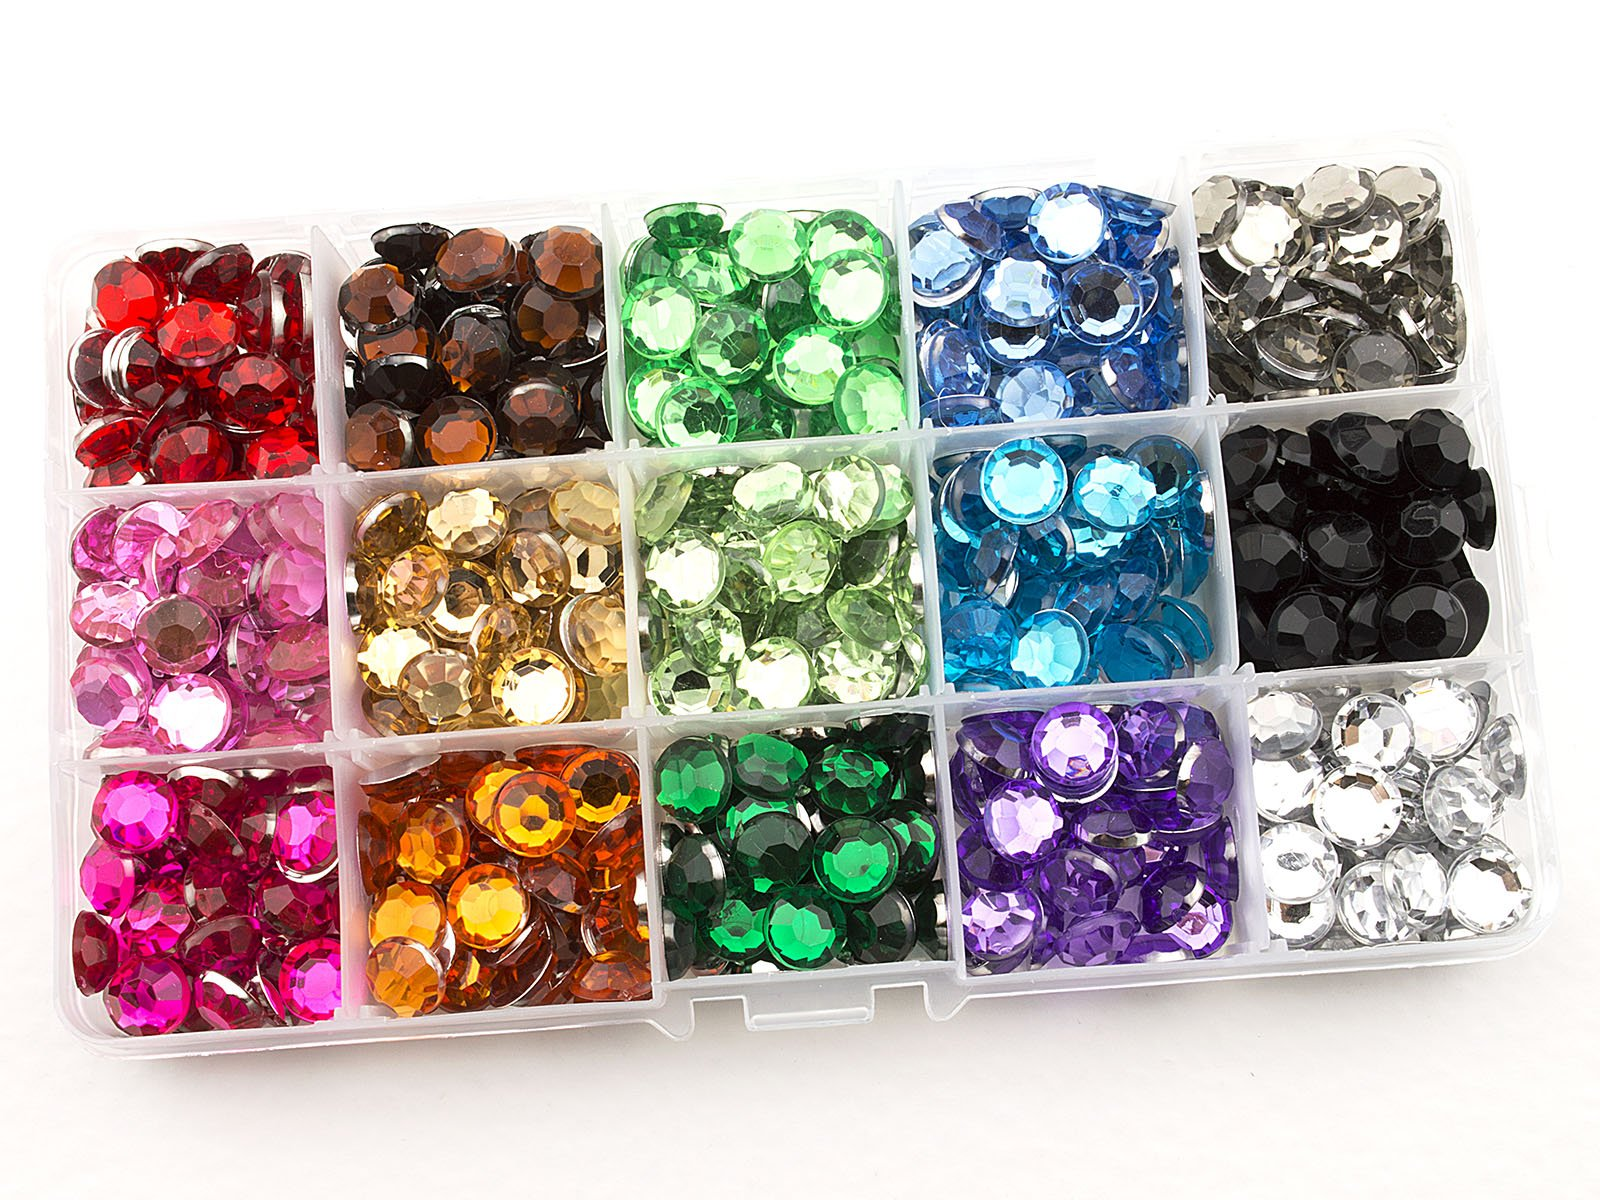 Summer-Ray 10mm Assorted Color Rhinestones In Storage Box Value Pack by Summer-Ray.com